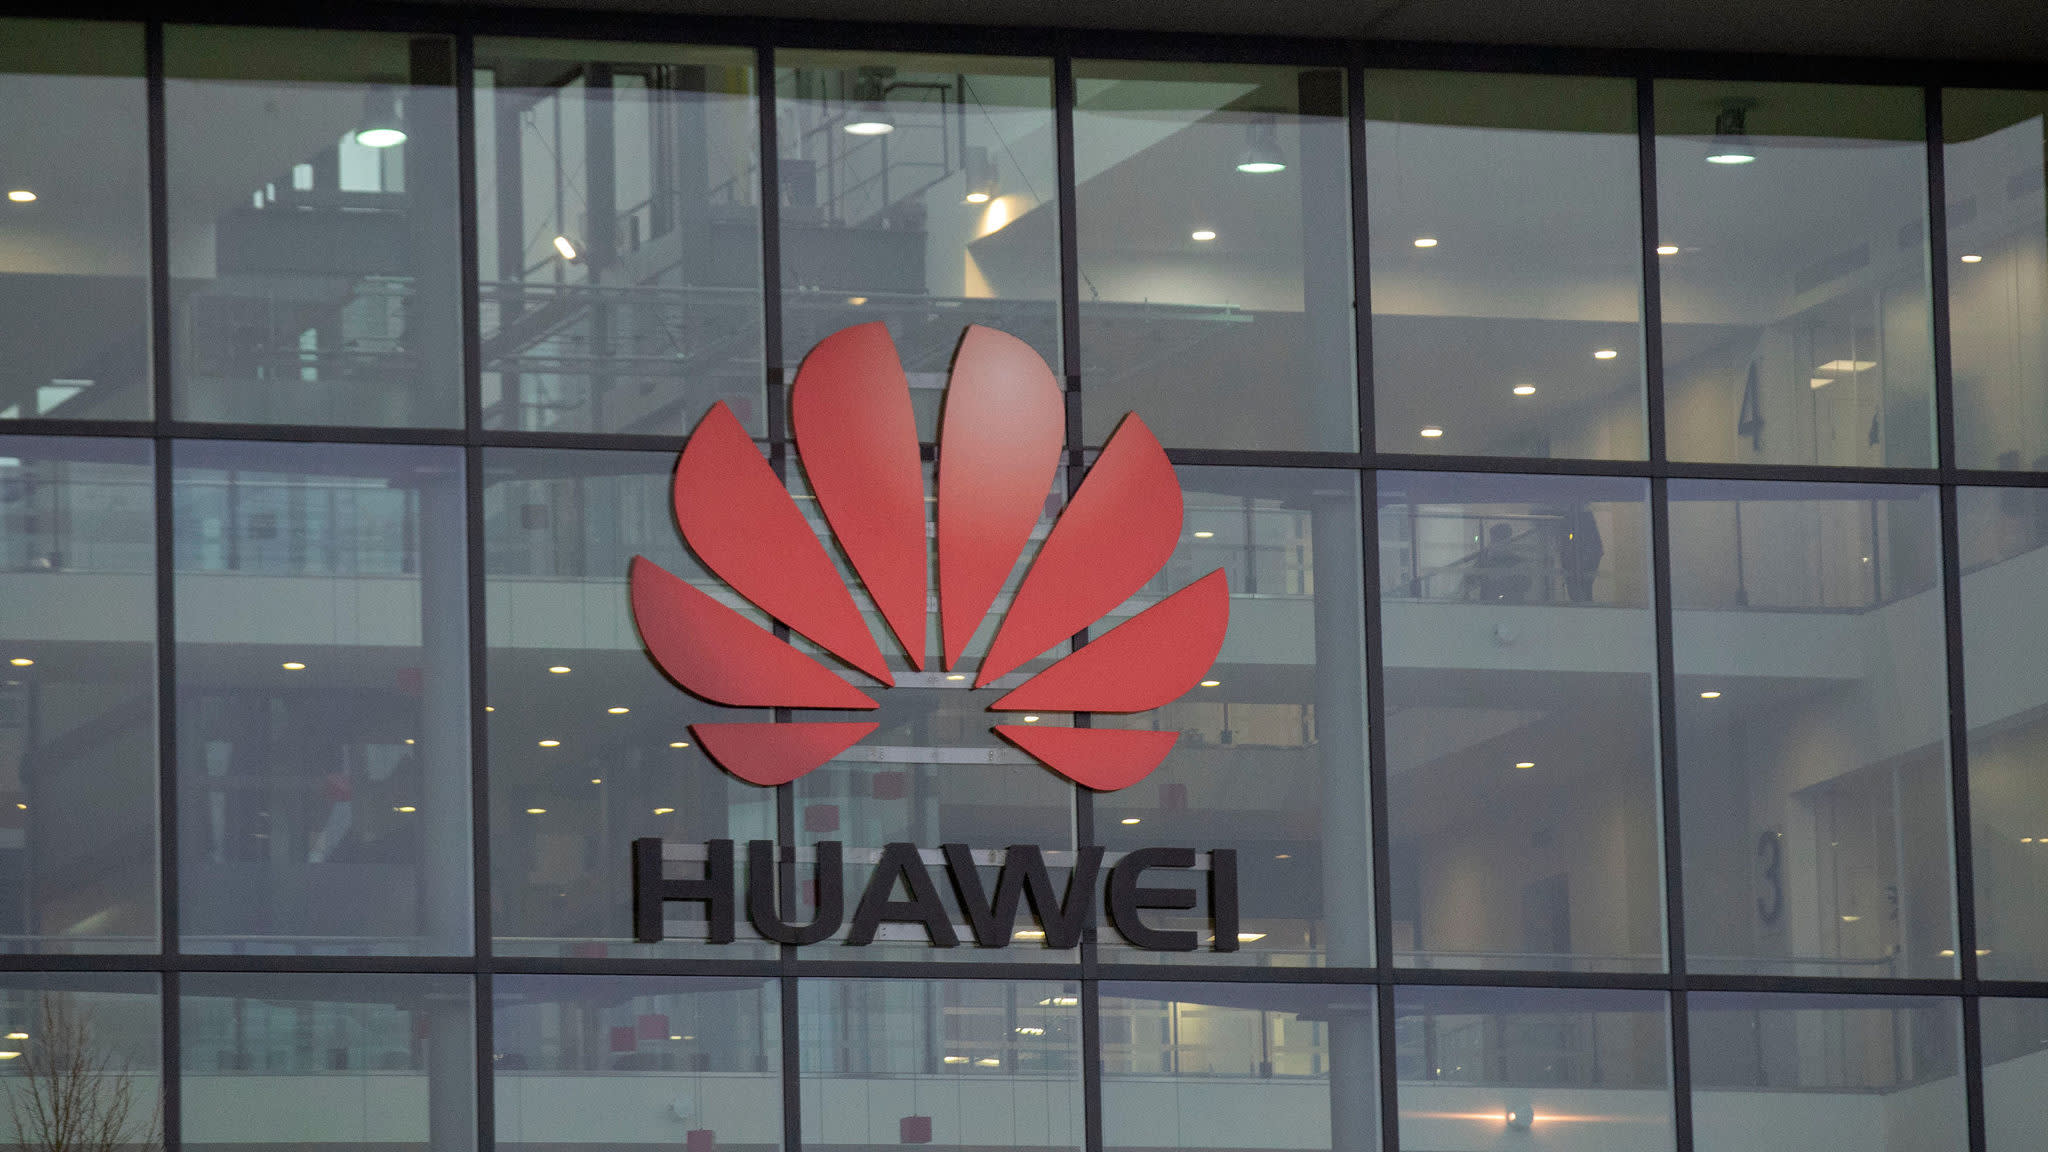 UK launches high-level probe into unprecedented Huawei leak | Financial Times